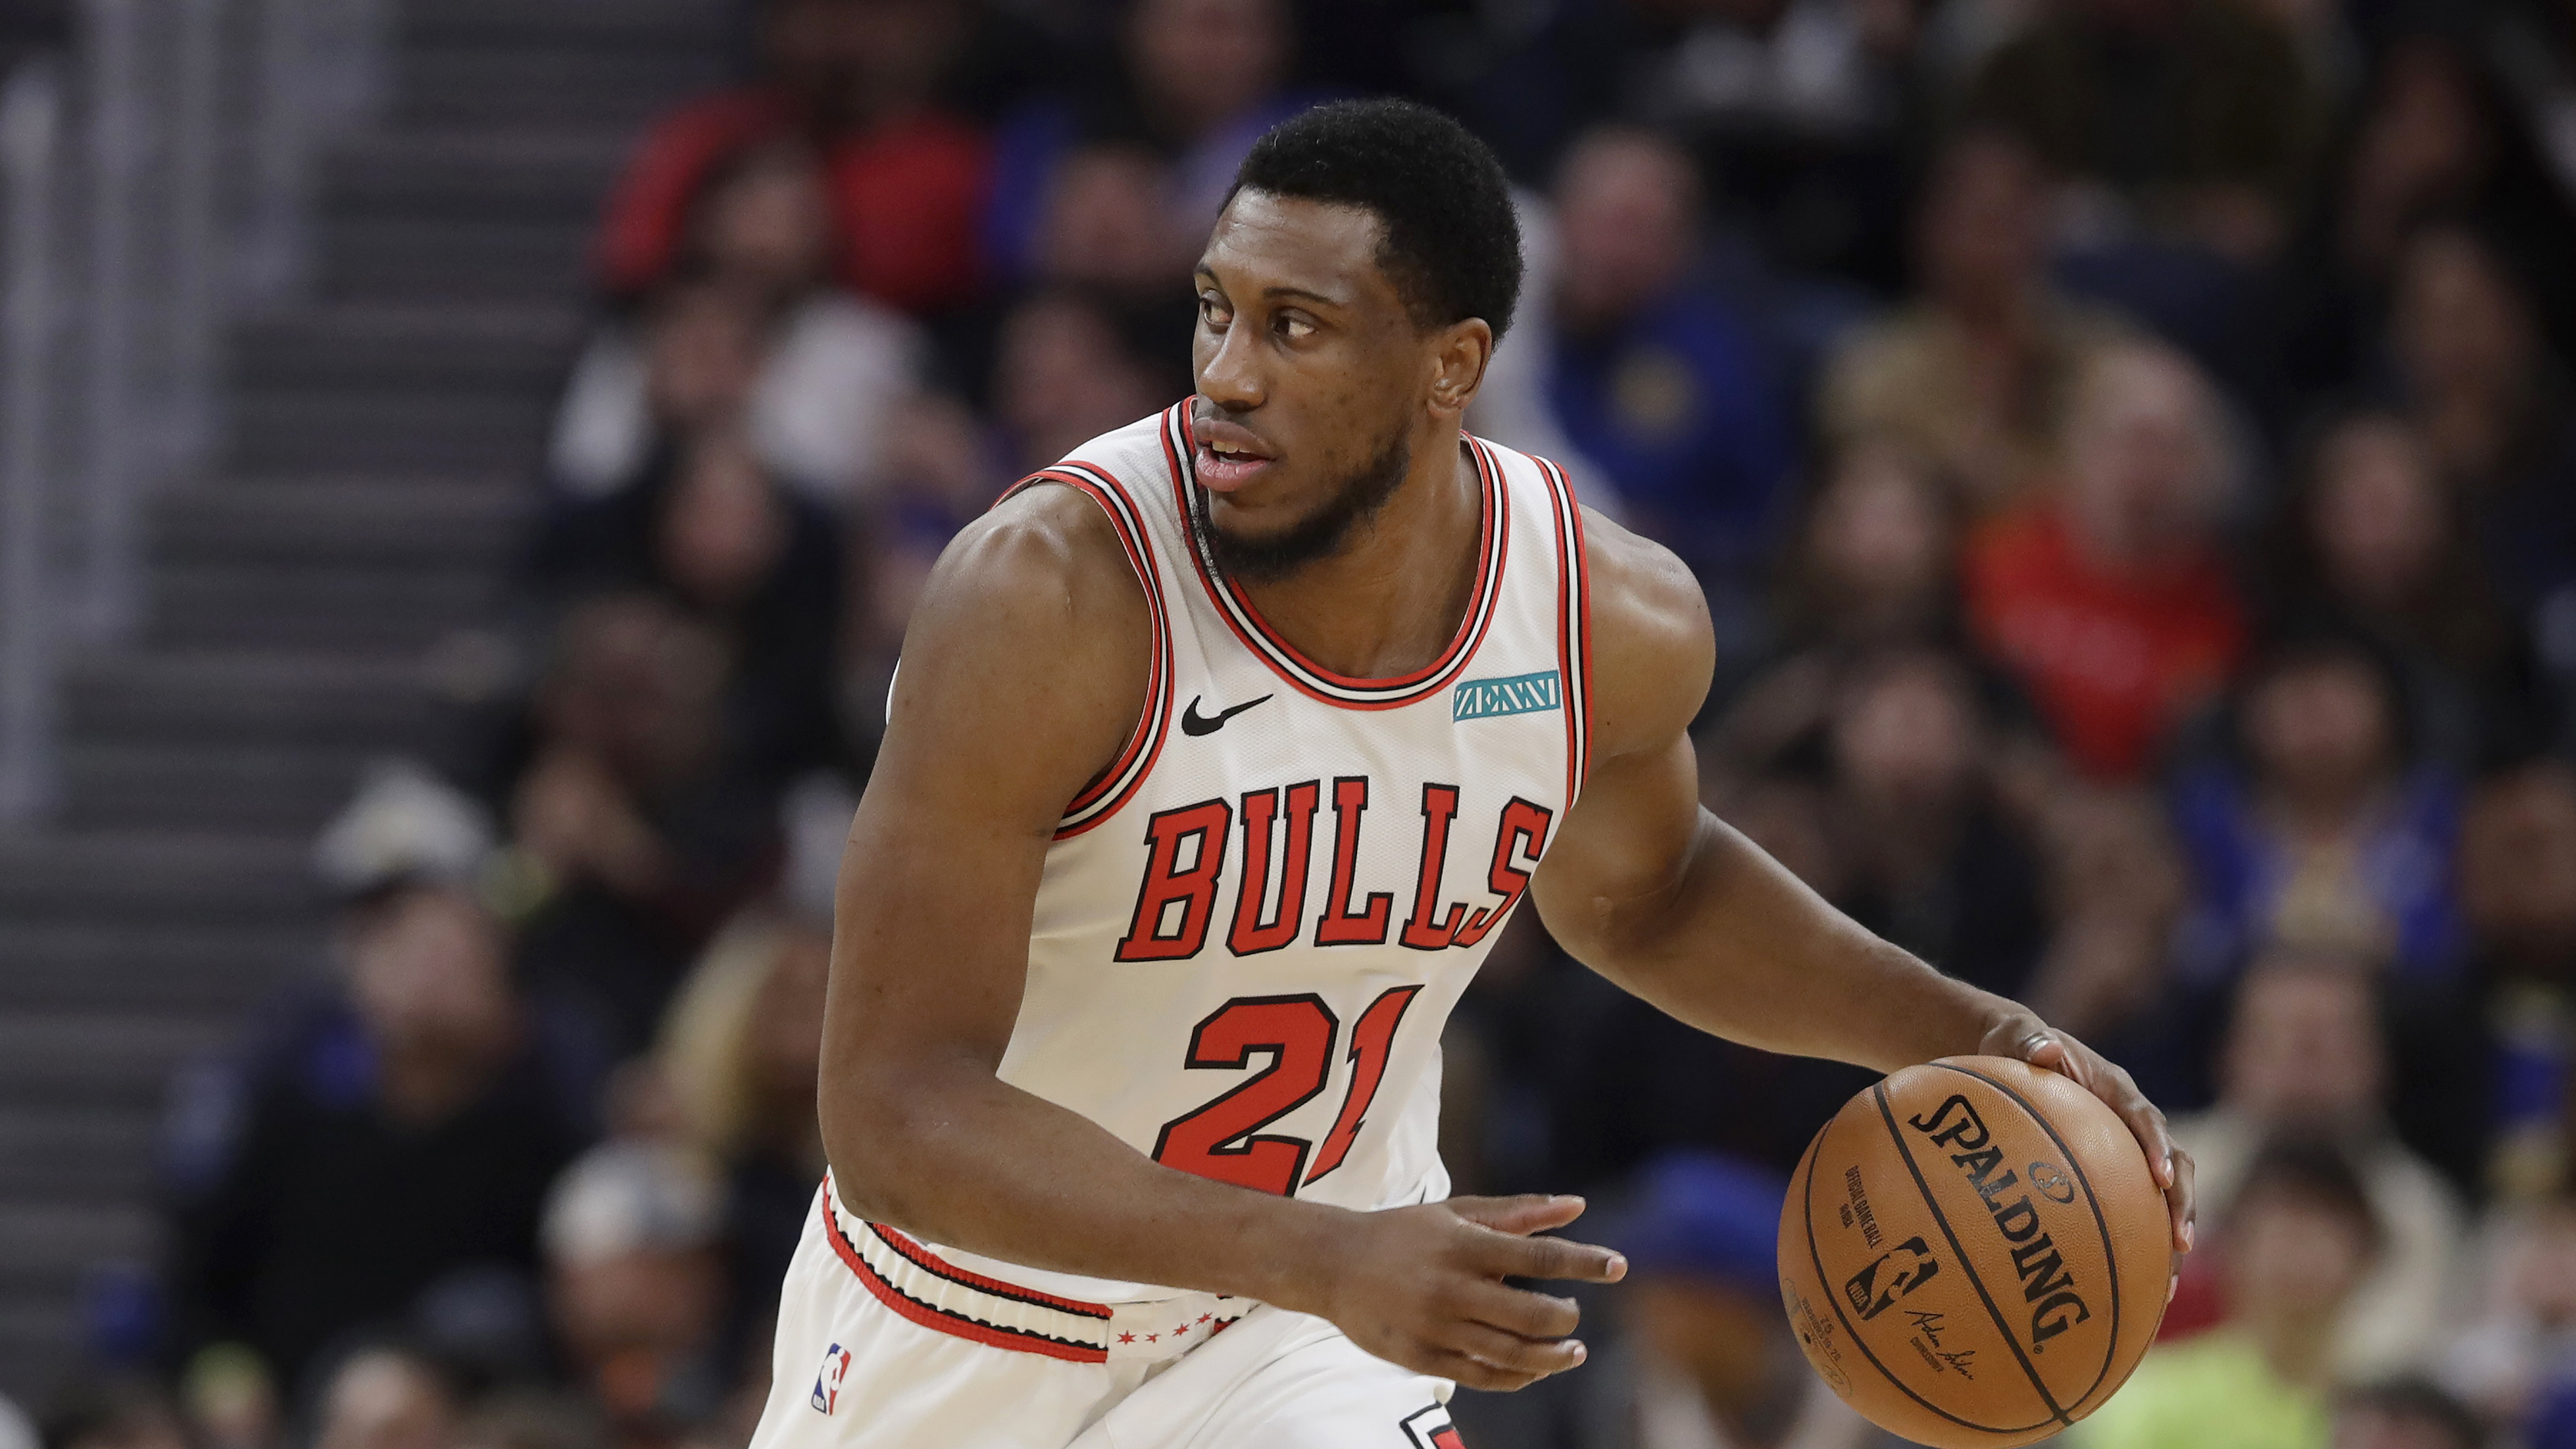 Thaddeus Young apparently is unhappy with his role on the Bulls.